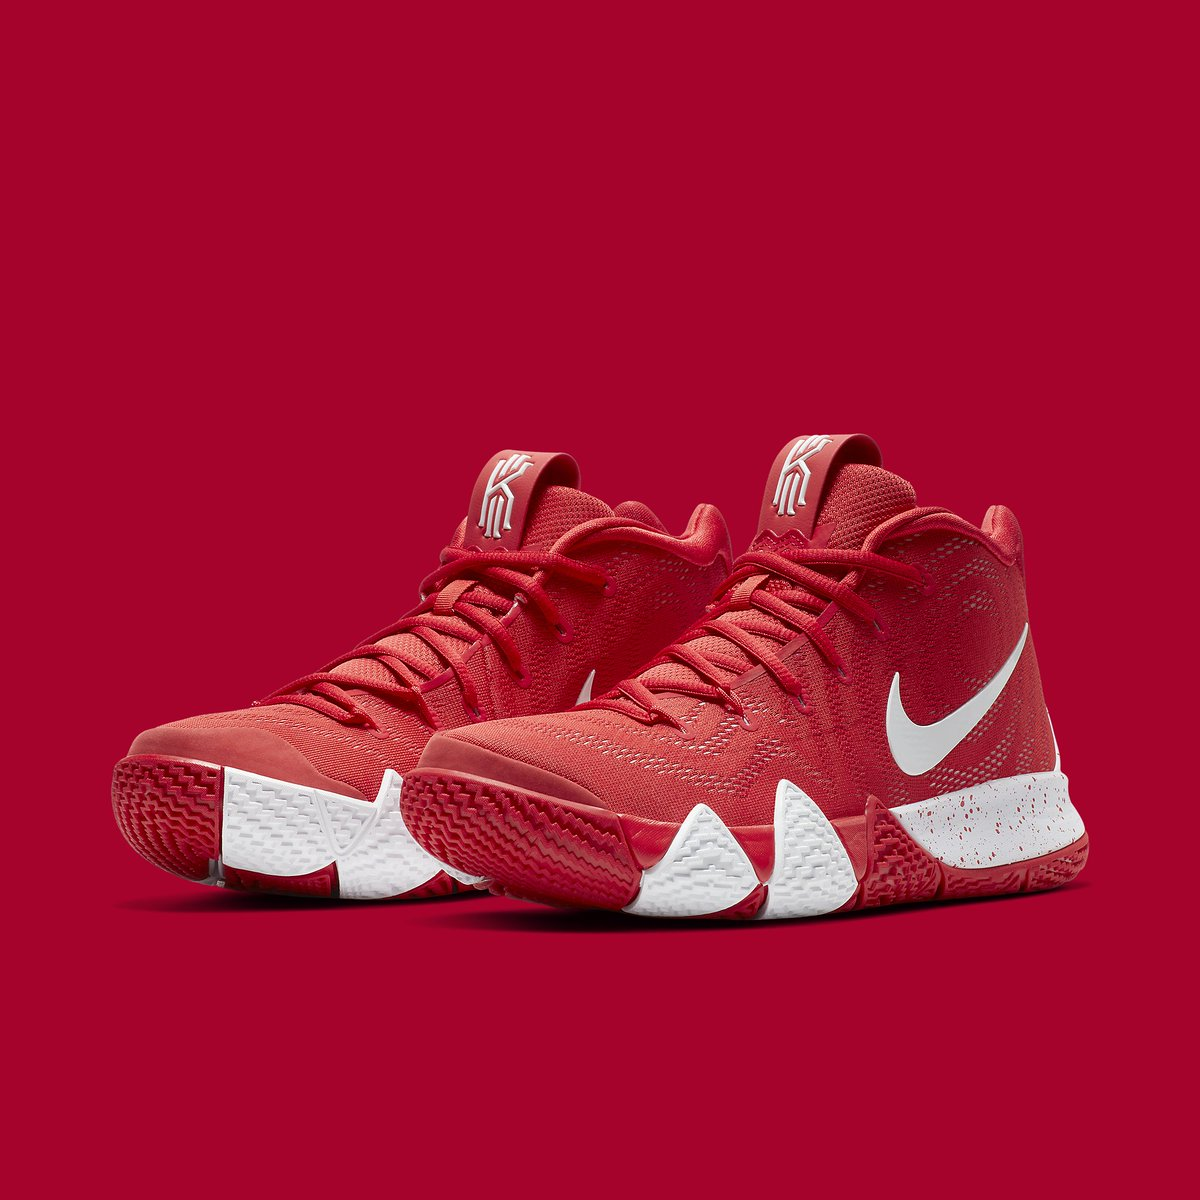 23f2d28e9c3 The Nike Kyrie 4 Team Bank Collection. Coming soon for  120  each.pic.twitter.com BmT7905Xob